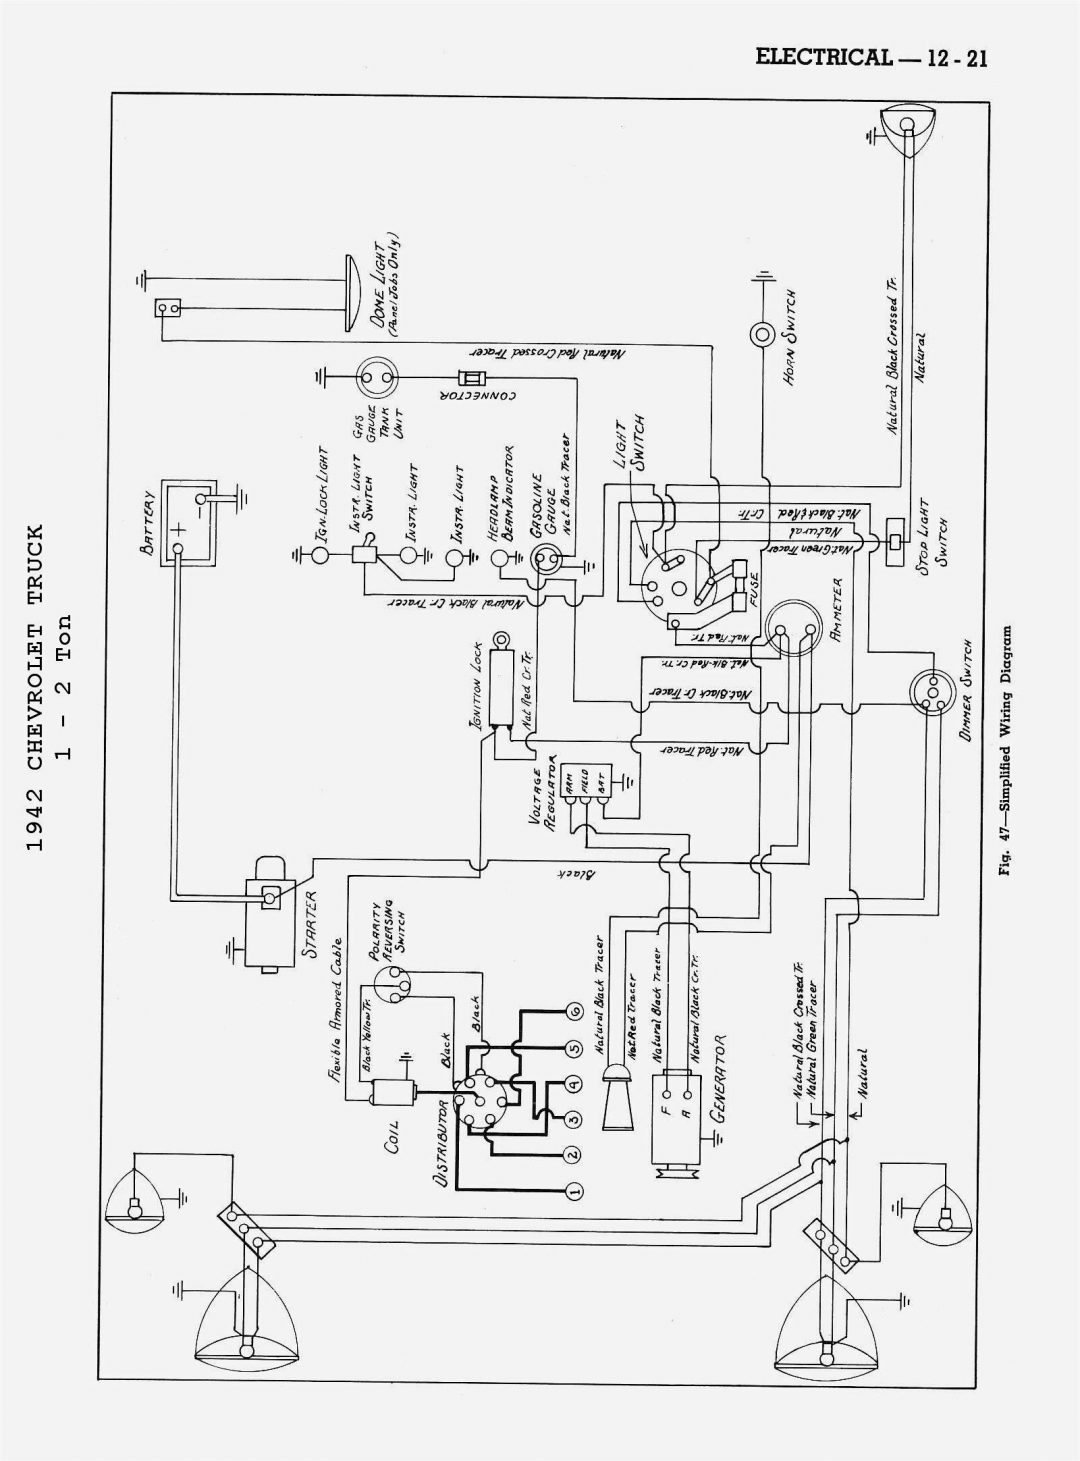 Wiring Diagrams For Fender Stratocasters